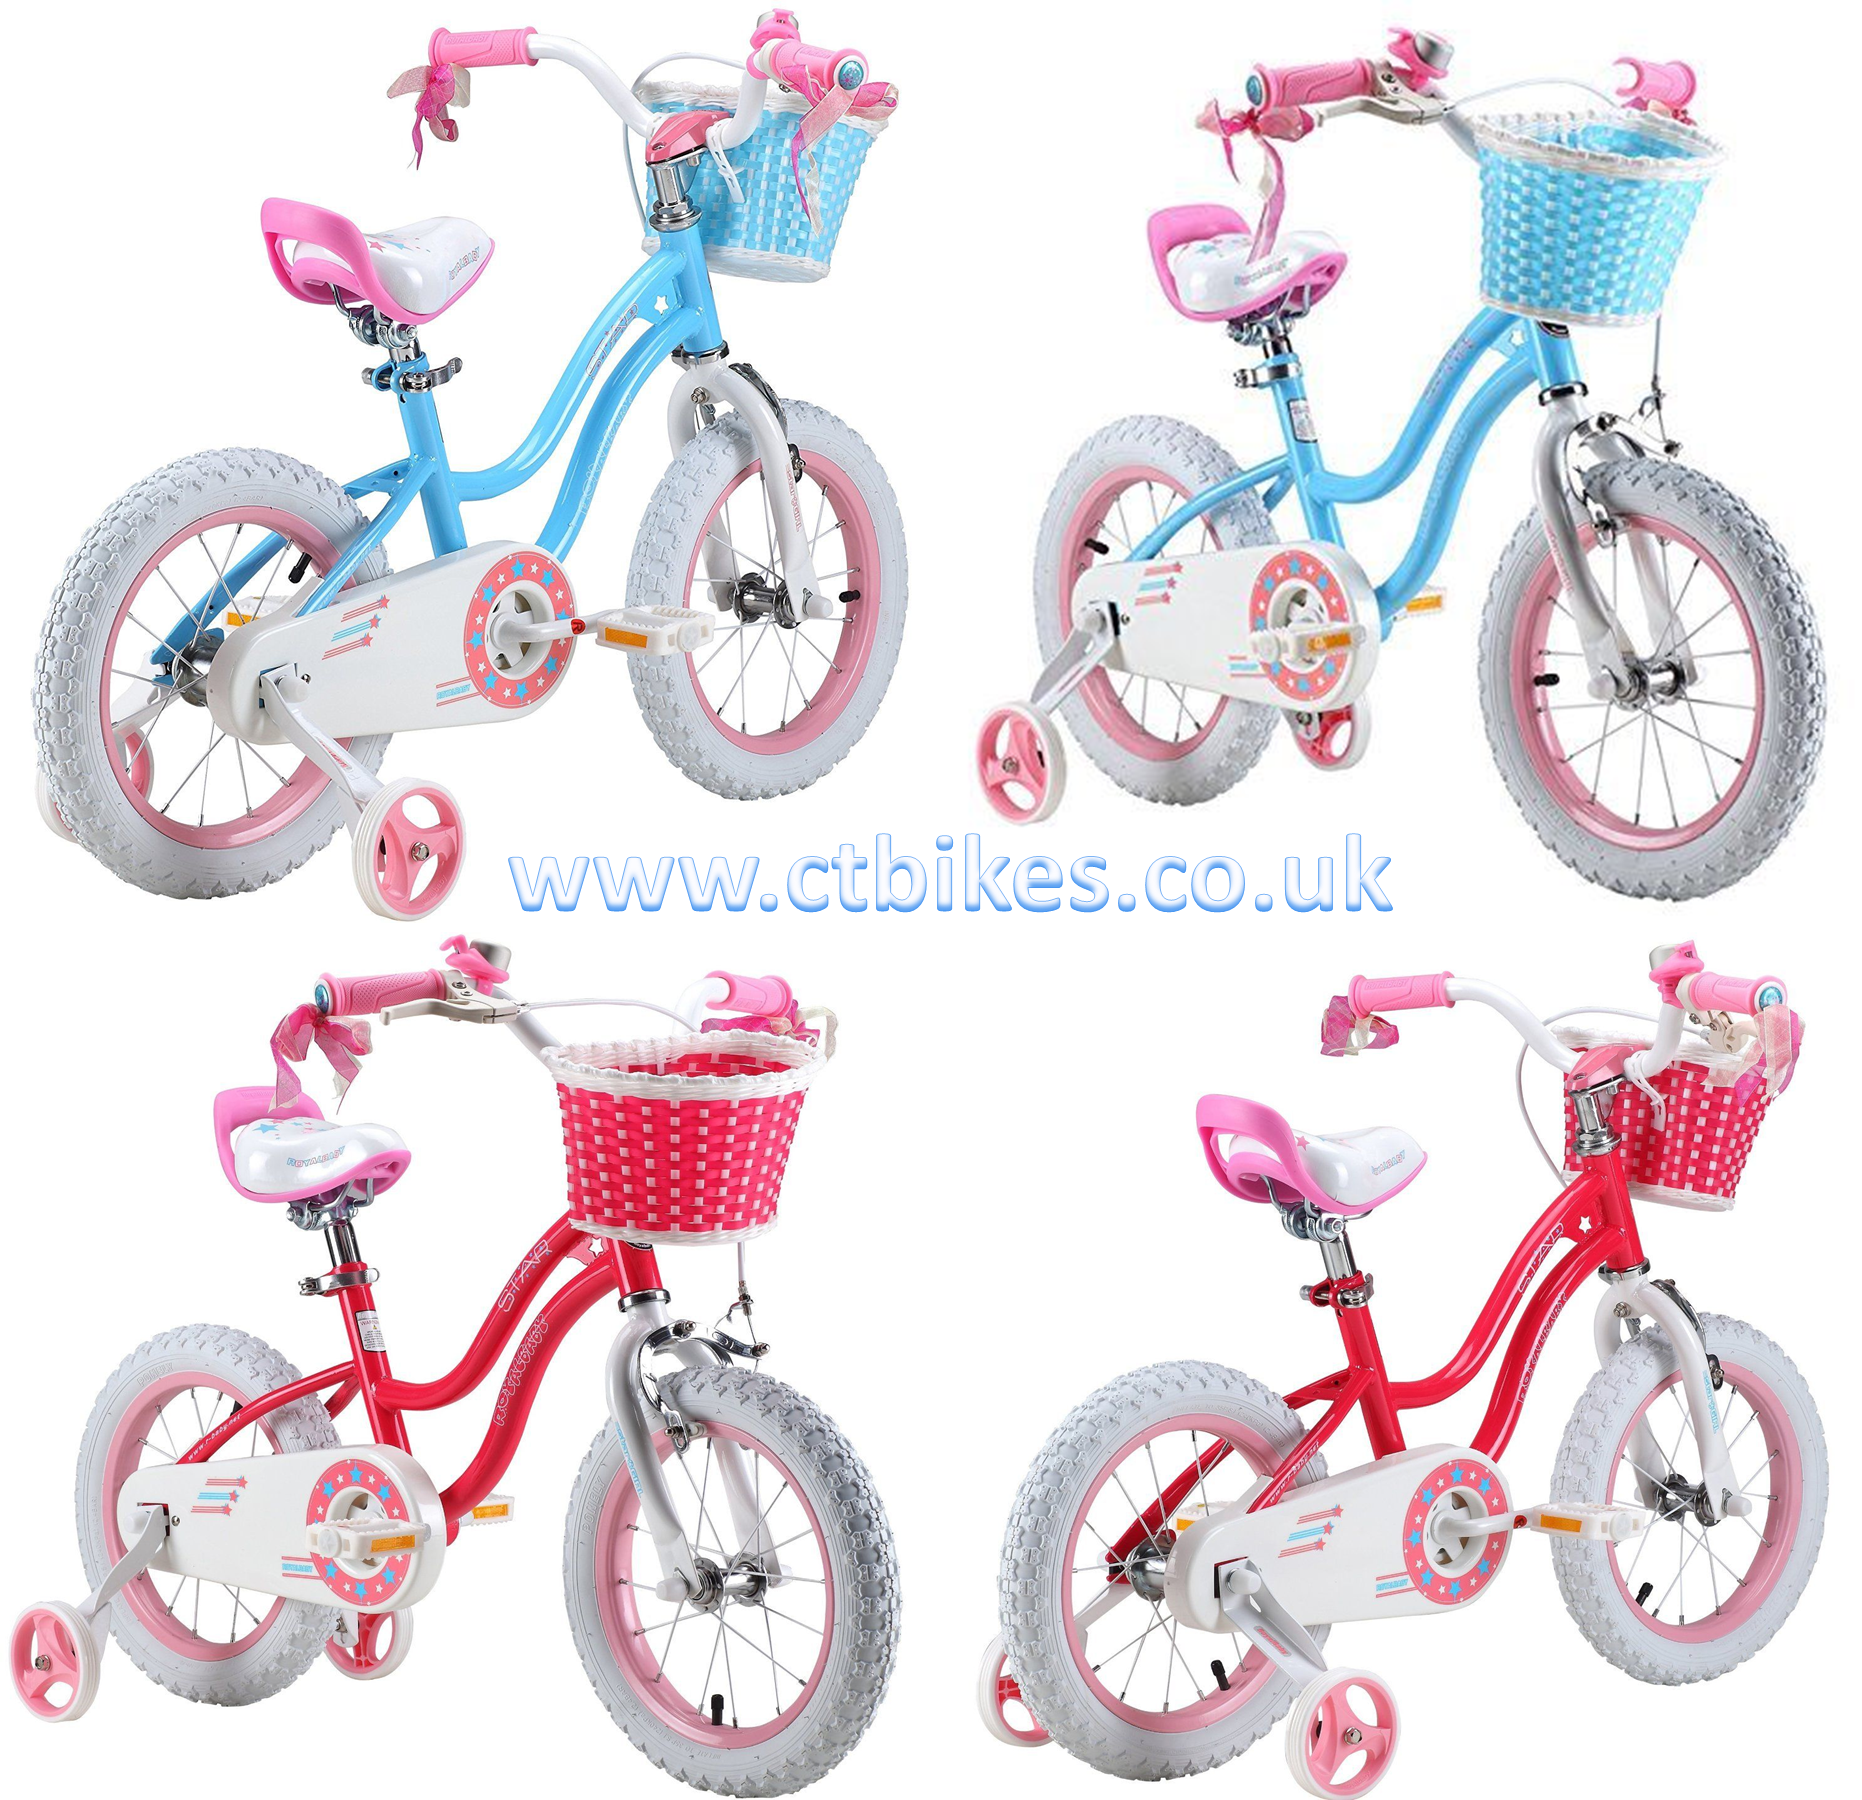 b861a05d63a7 ROYAL BABY STAR GIRL PRINCESS GRIL'S BIKES IN SIZE 12